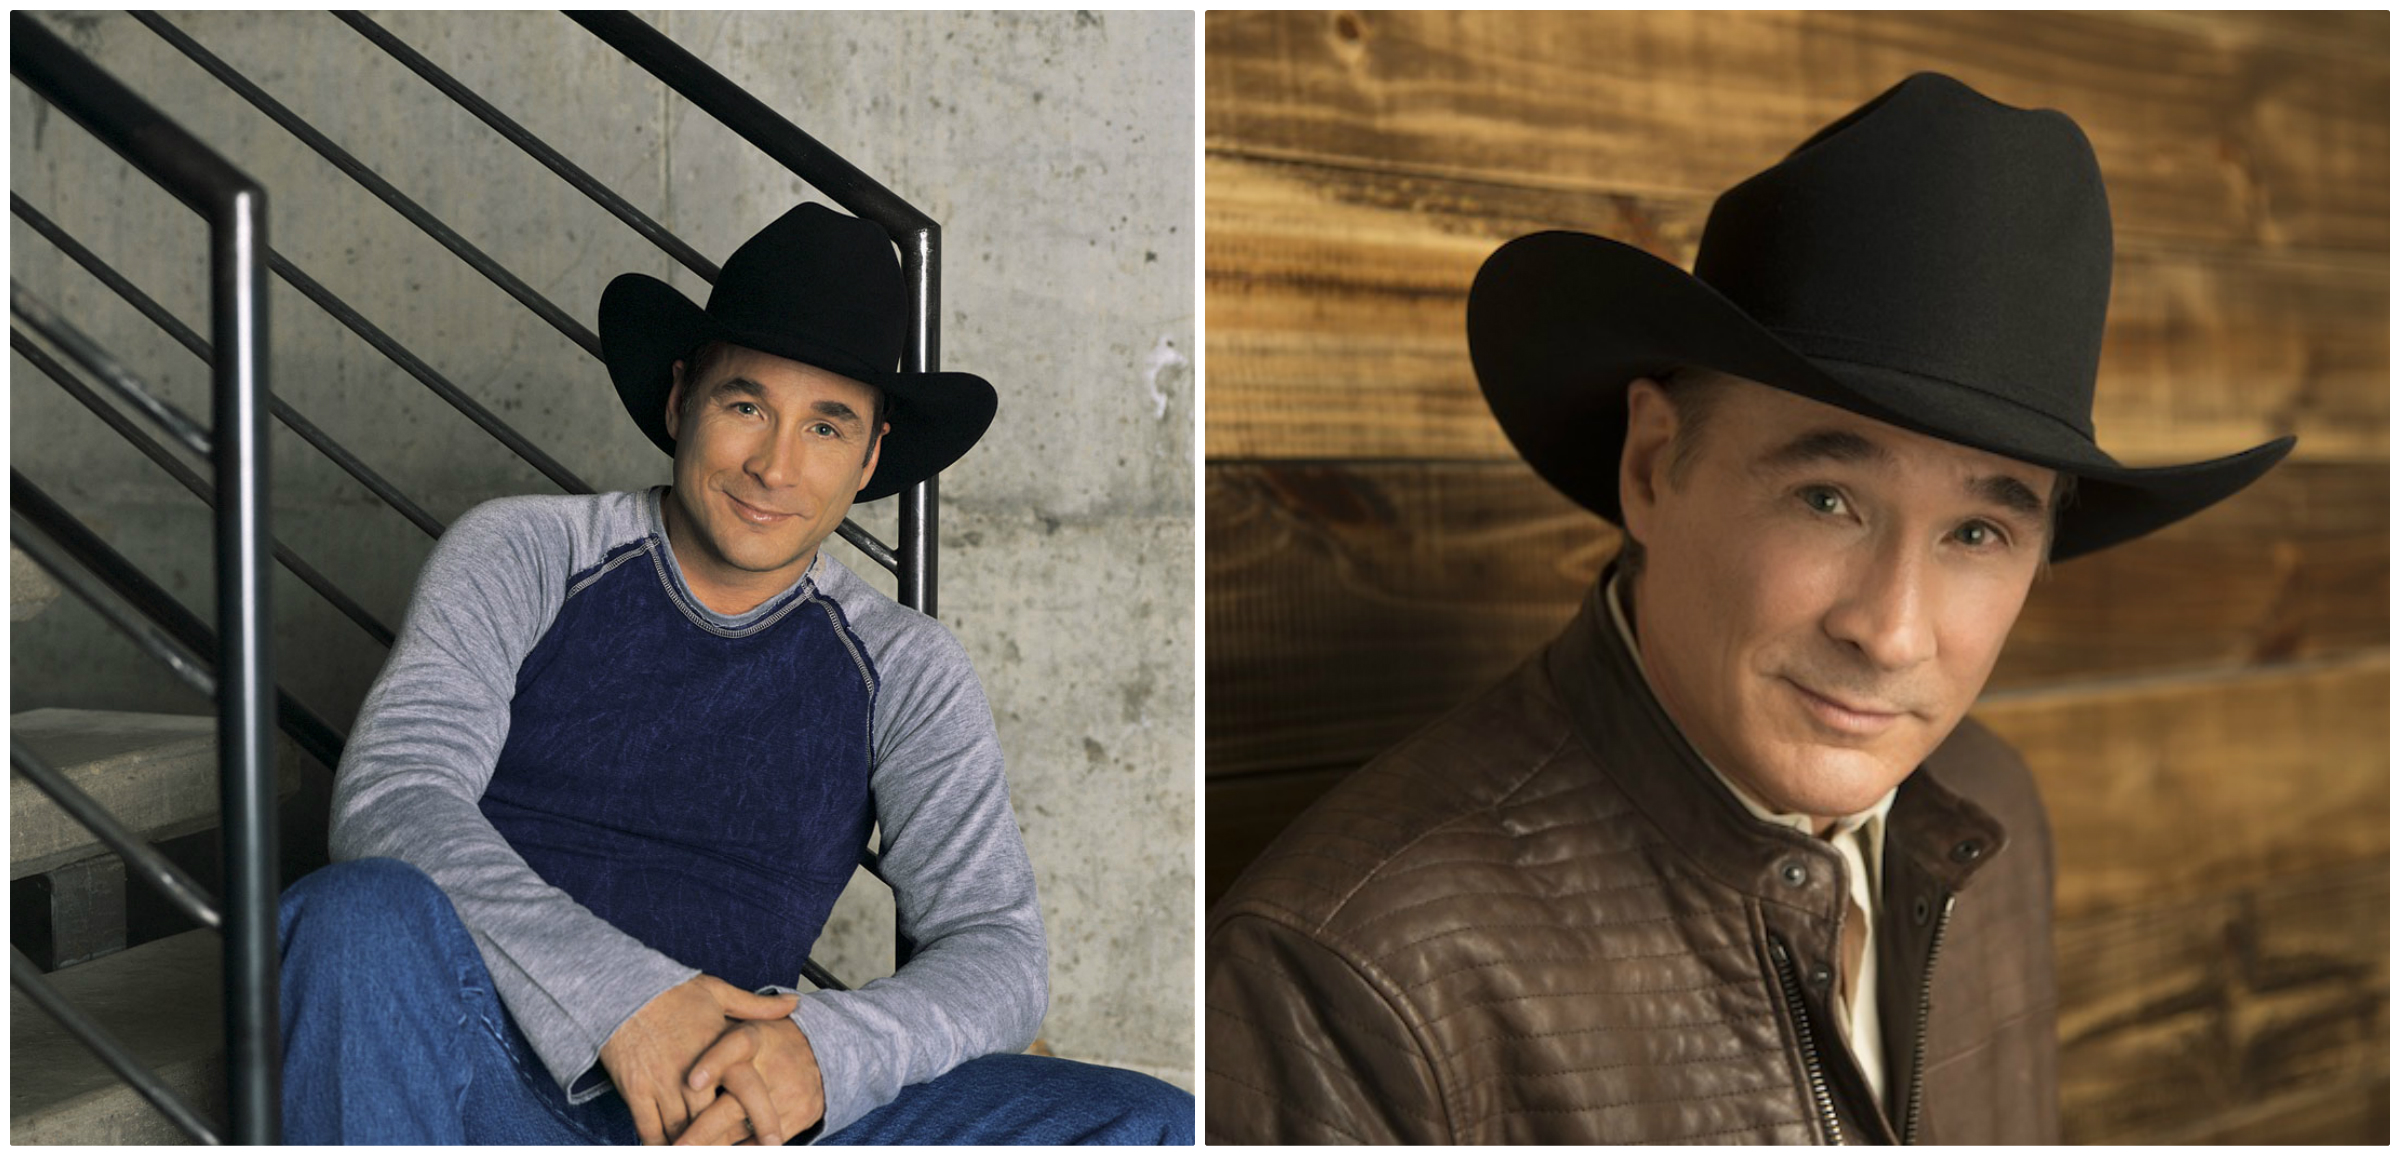 clint black singles Clint black (american, singer) was born on 04-02-1962 get more info like birth place, age, birth sign, biography, family, relation & latest news etc.